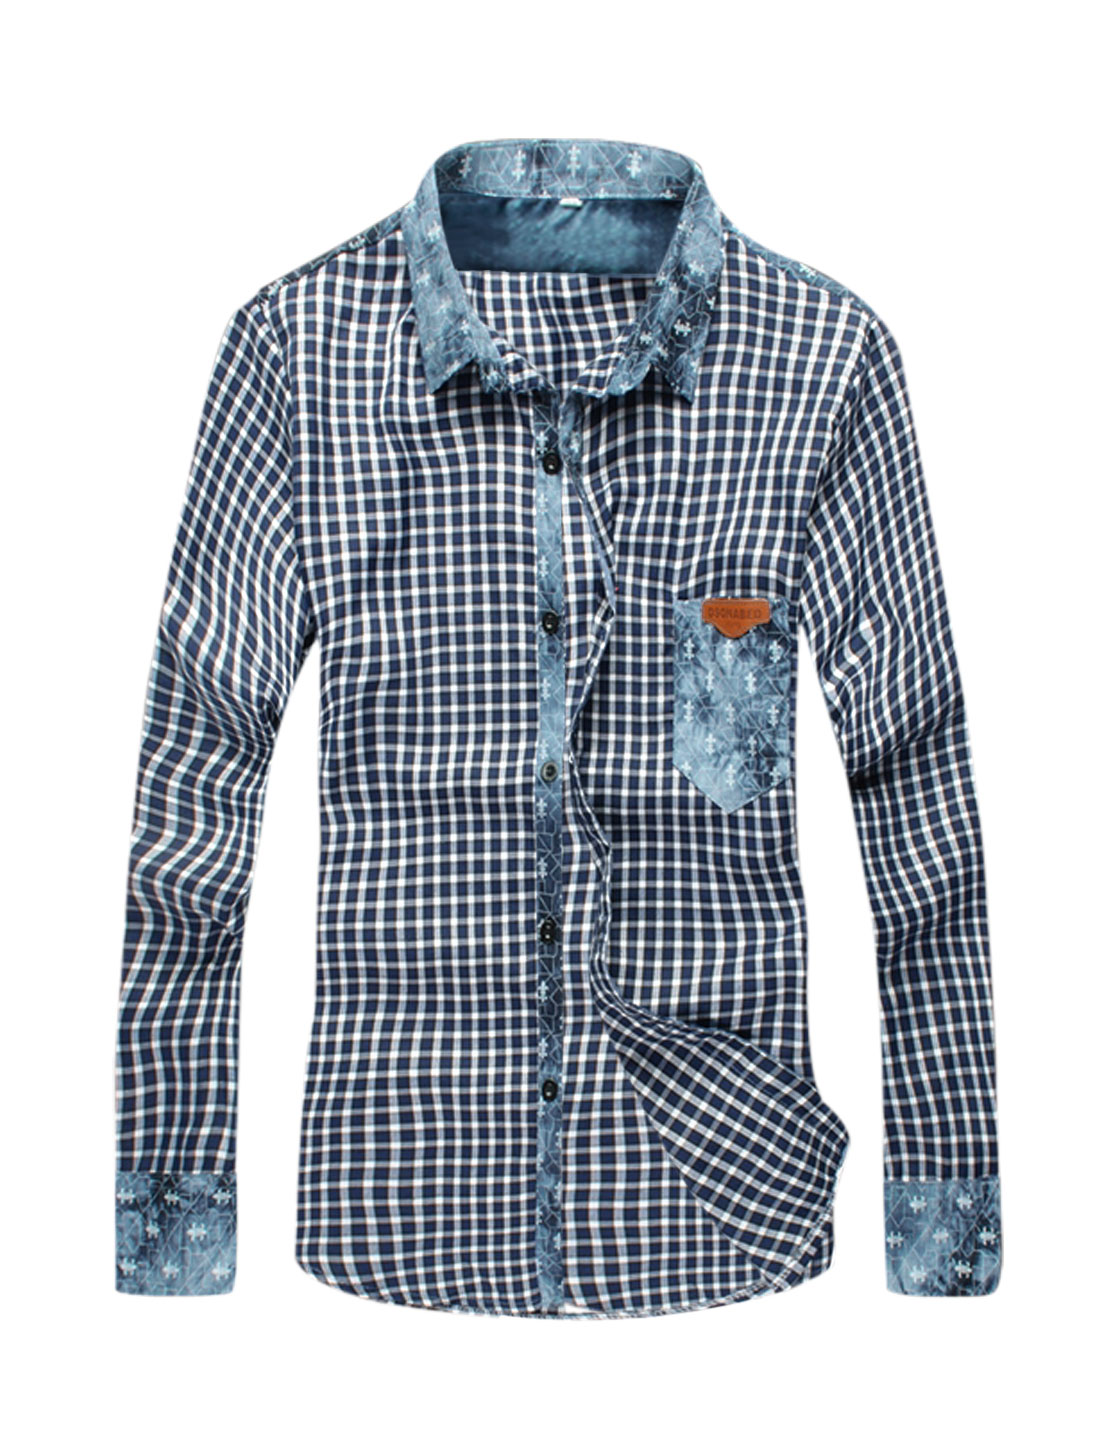 Men Splicing Design Plaids Long Sleeves Casual Shirt Navy Blue White S